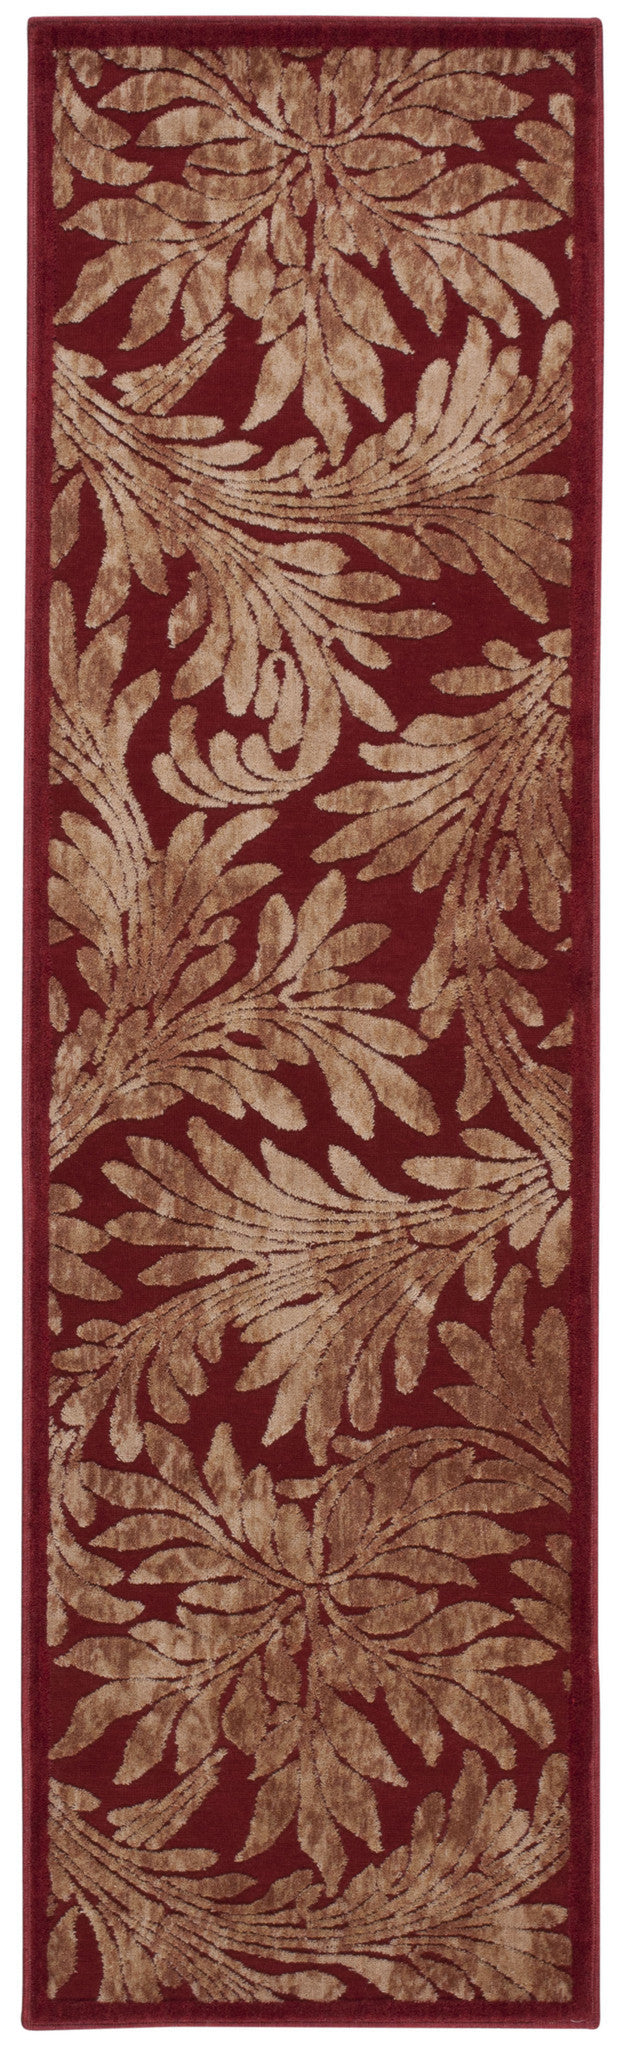 Nourison Graphic Illusions Red Area Rug GIL19 RED